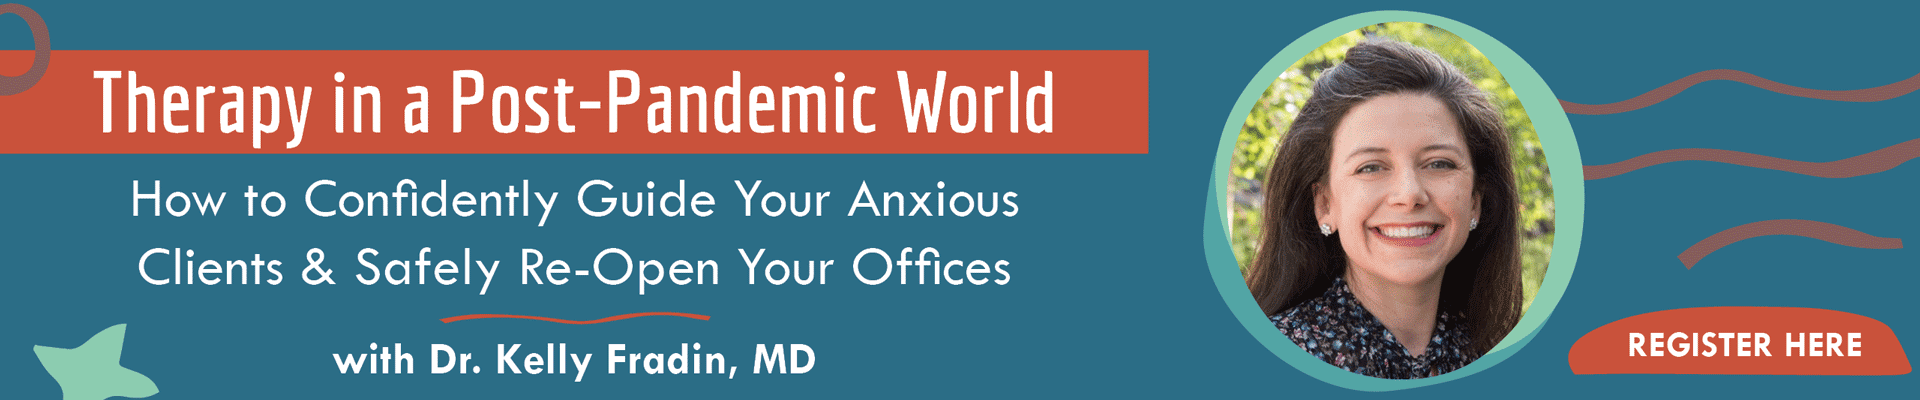 Therapy in a Post-Pandemic World: How to Help Your Anxious Clients & Safely Re-Open Your Office